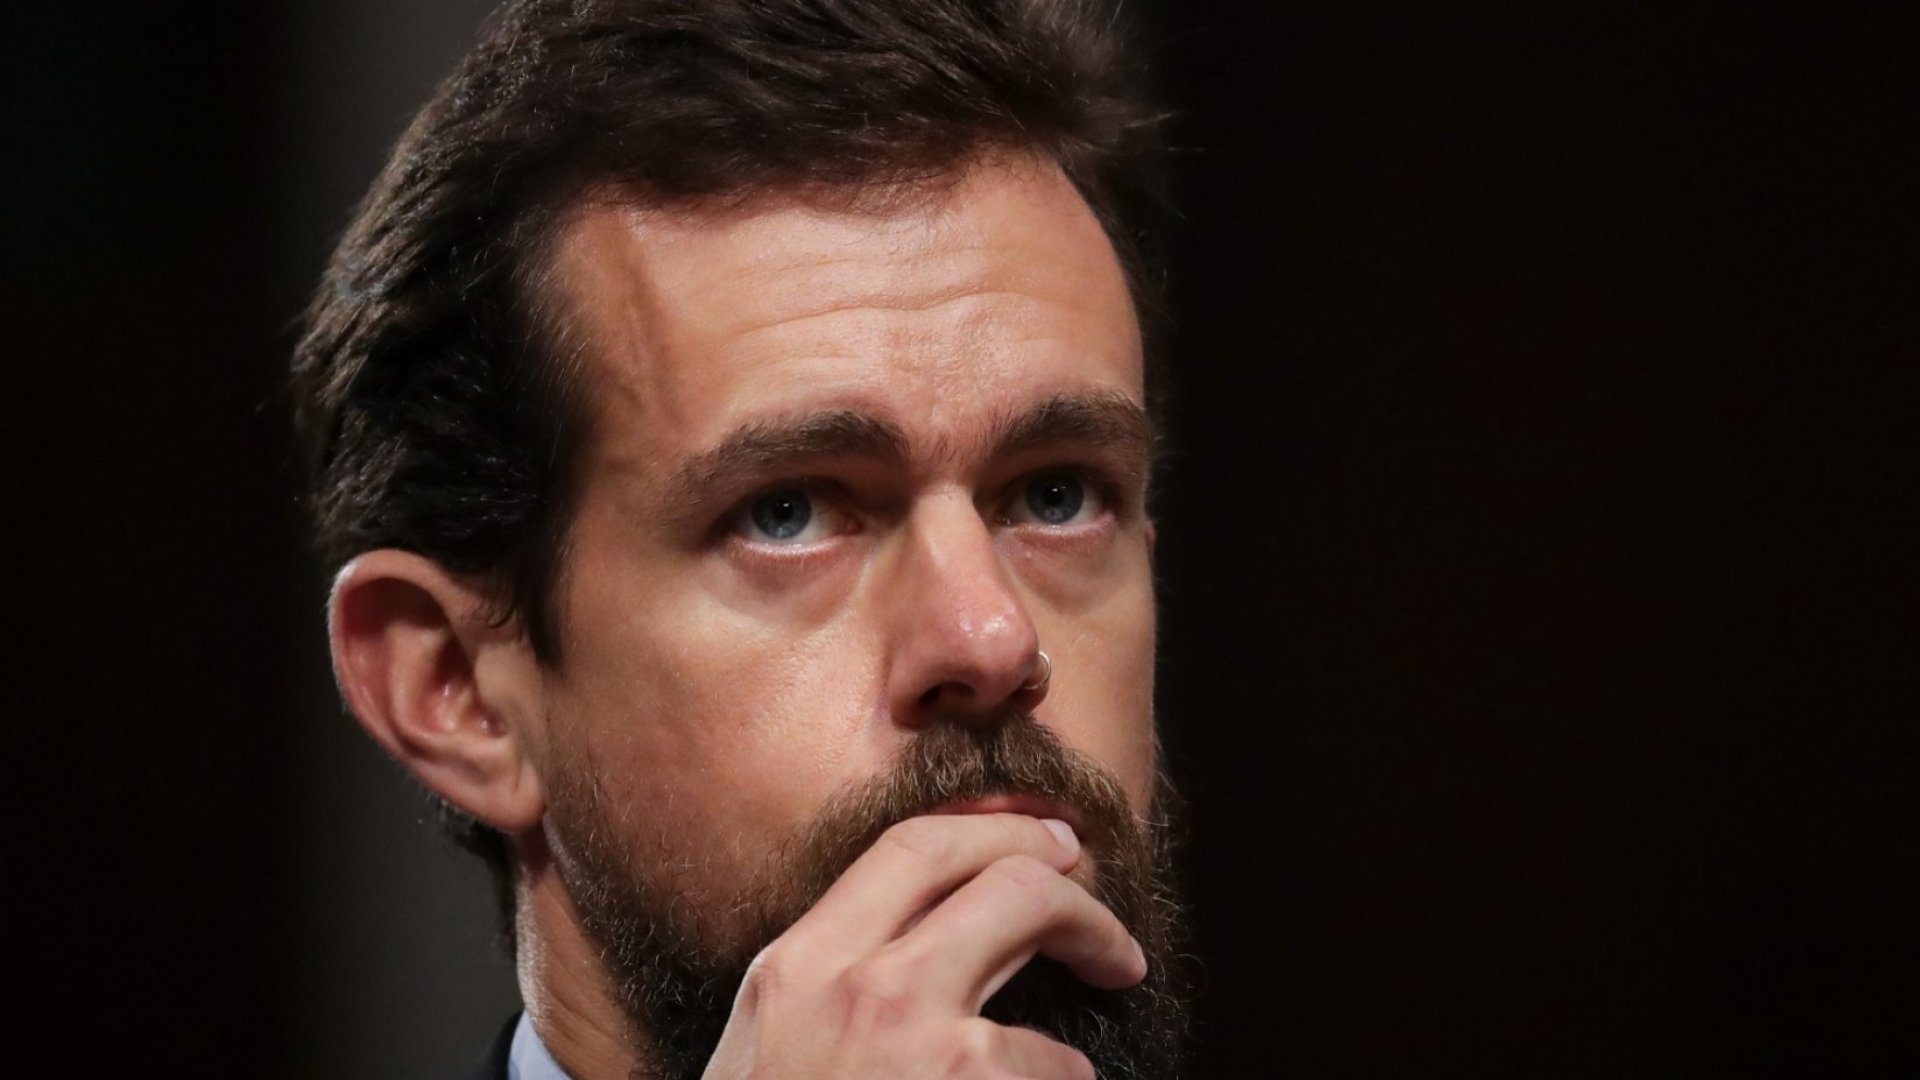 Ridiculous Security Flaw Leaves Twitters Users, Including CEO Jack Dorsey, Vulnerable to Hackers